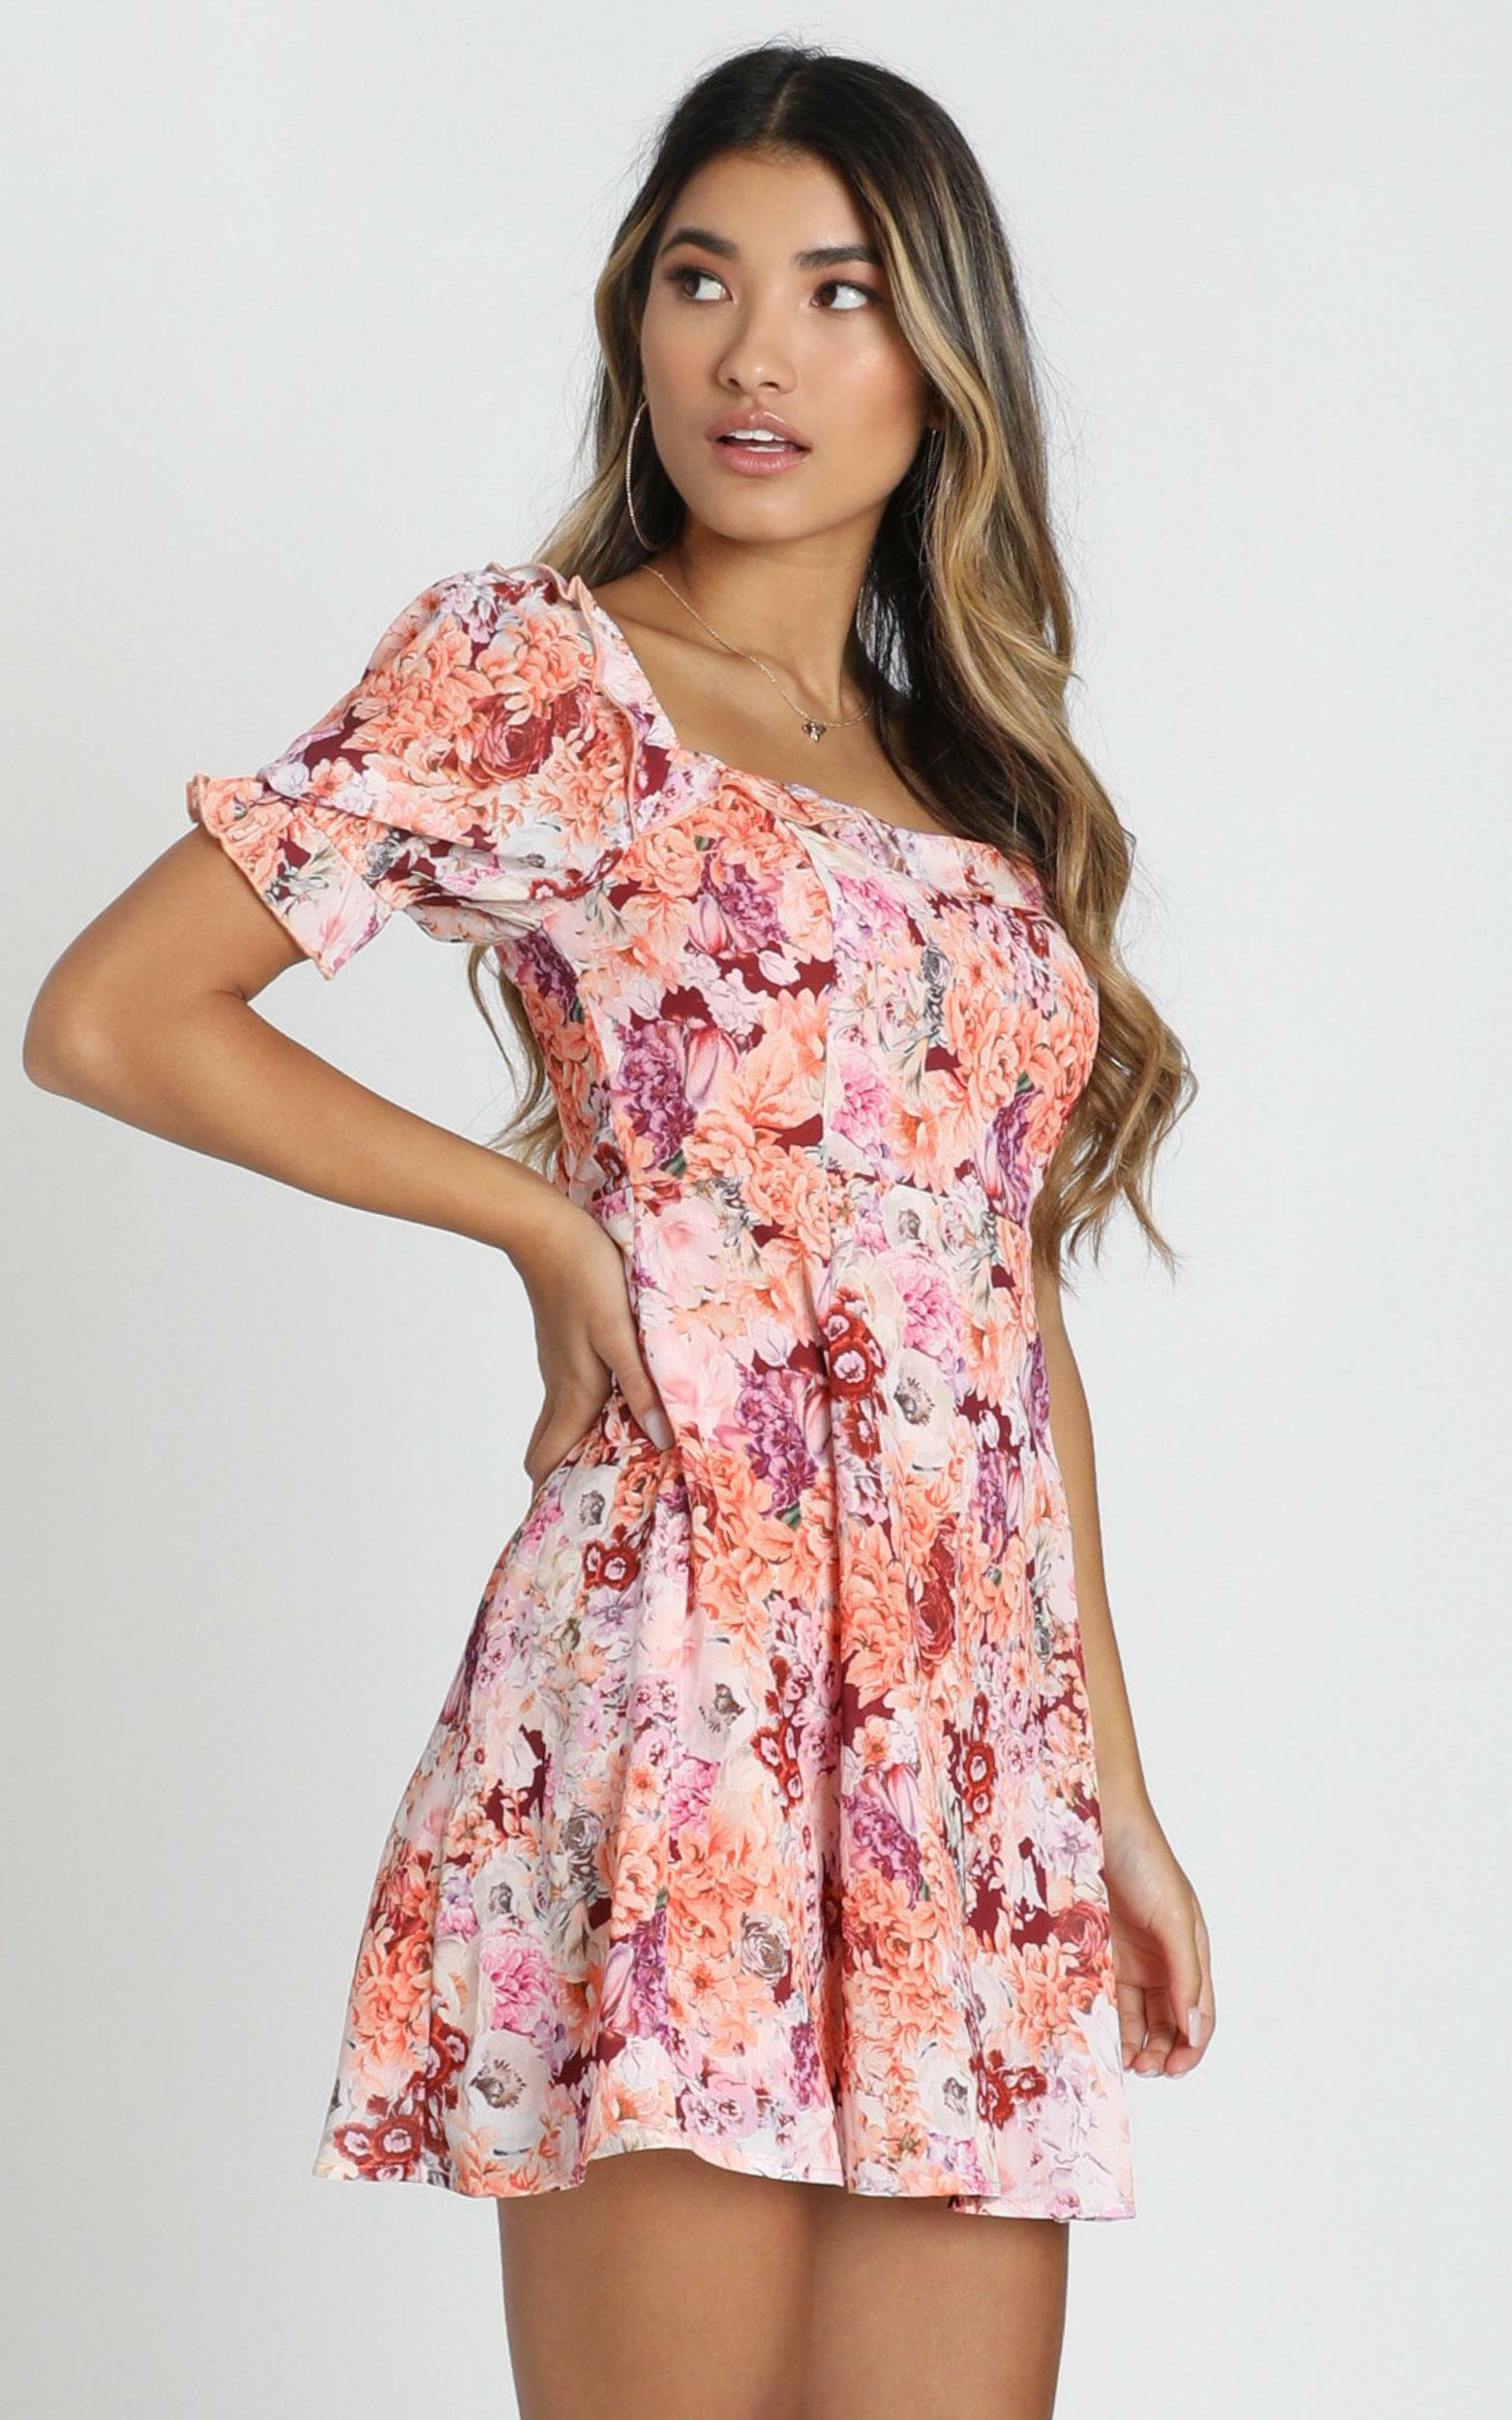 Fairy Floss Dress in tangerine floral - 20 (XXXXL), Orange, hi-res image number null